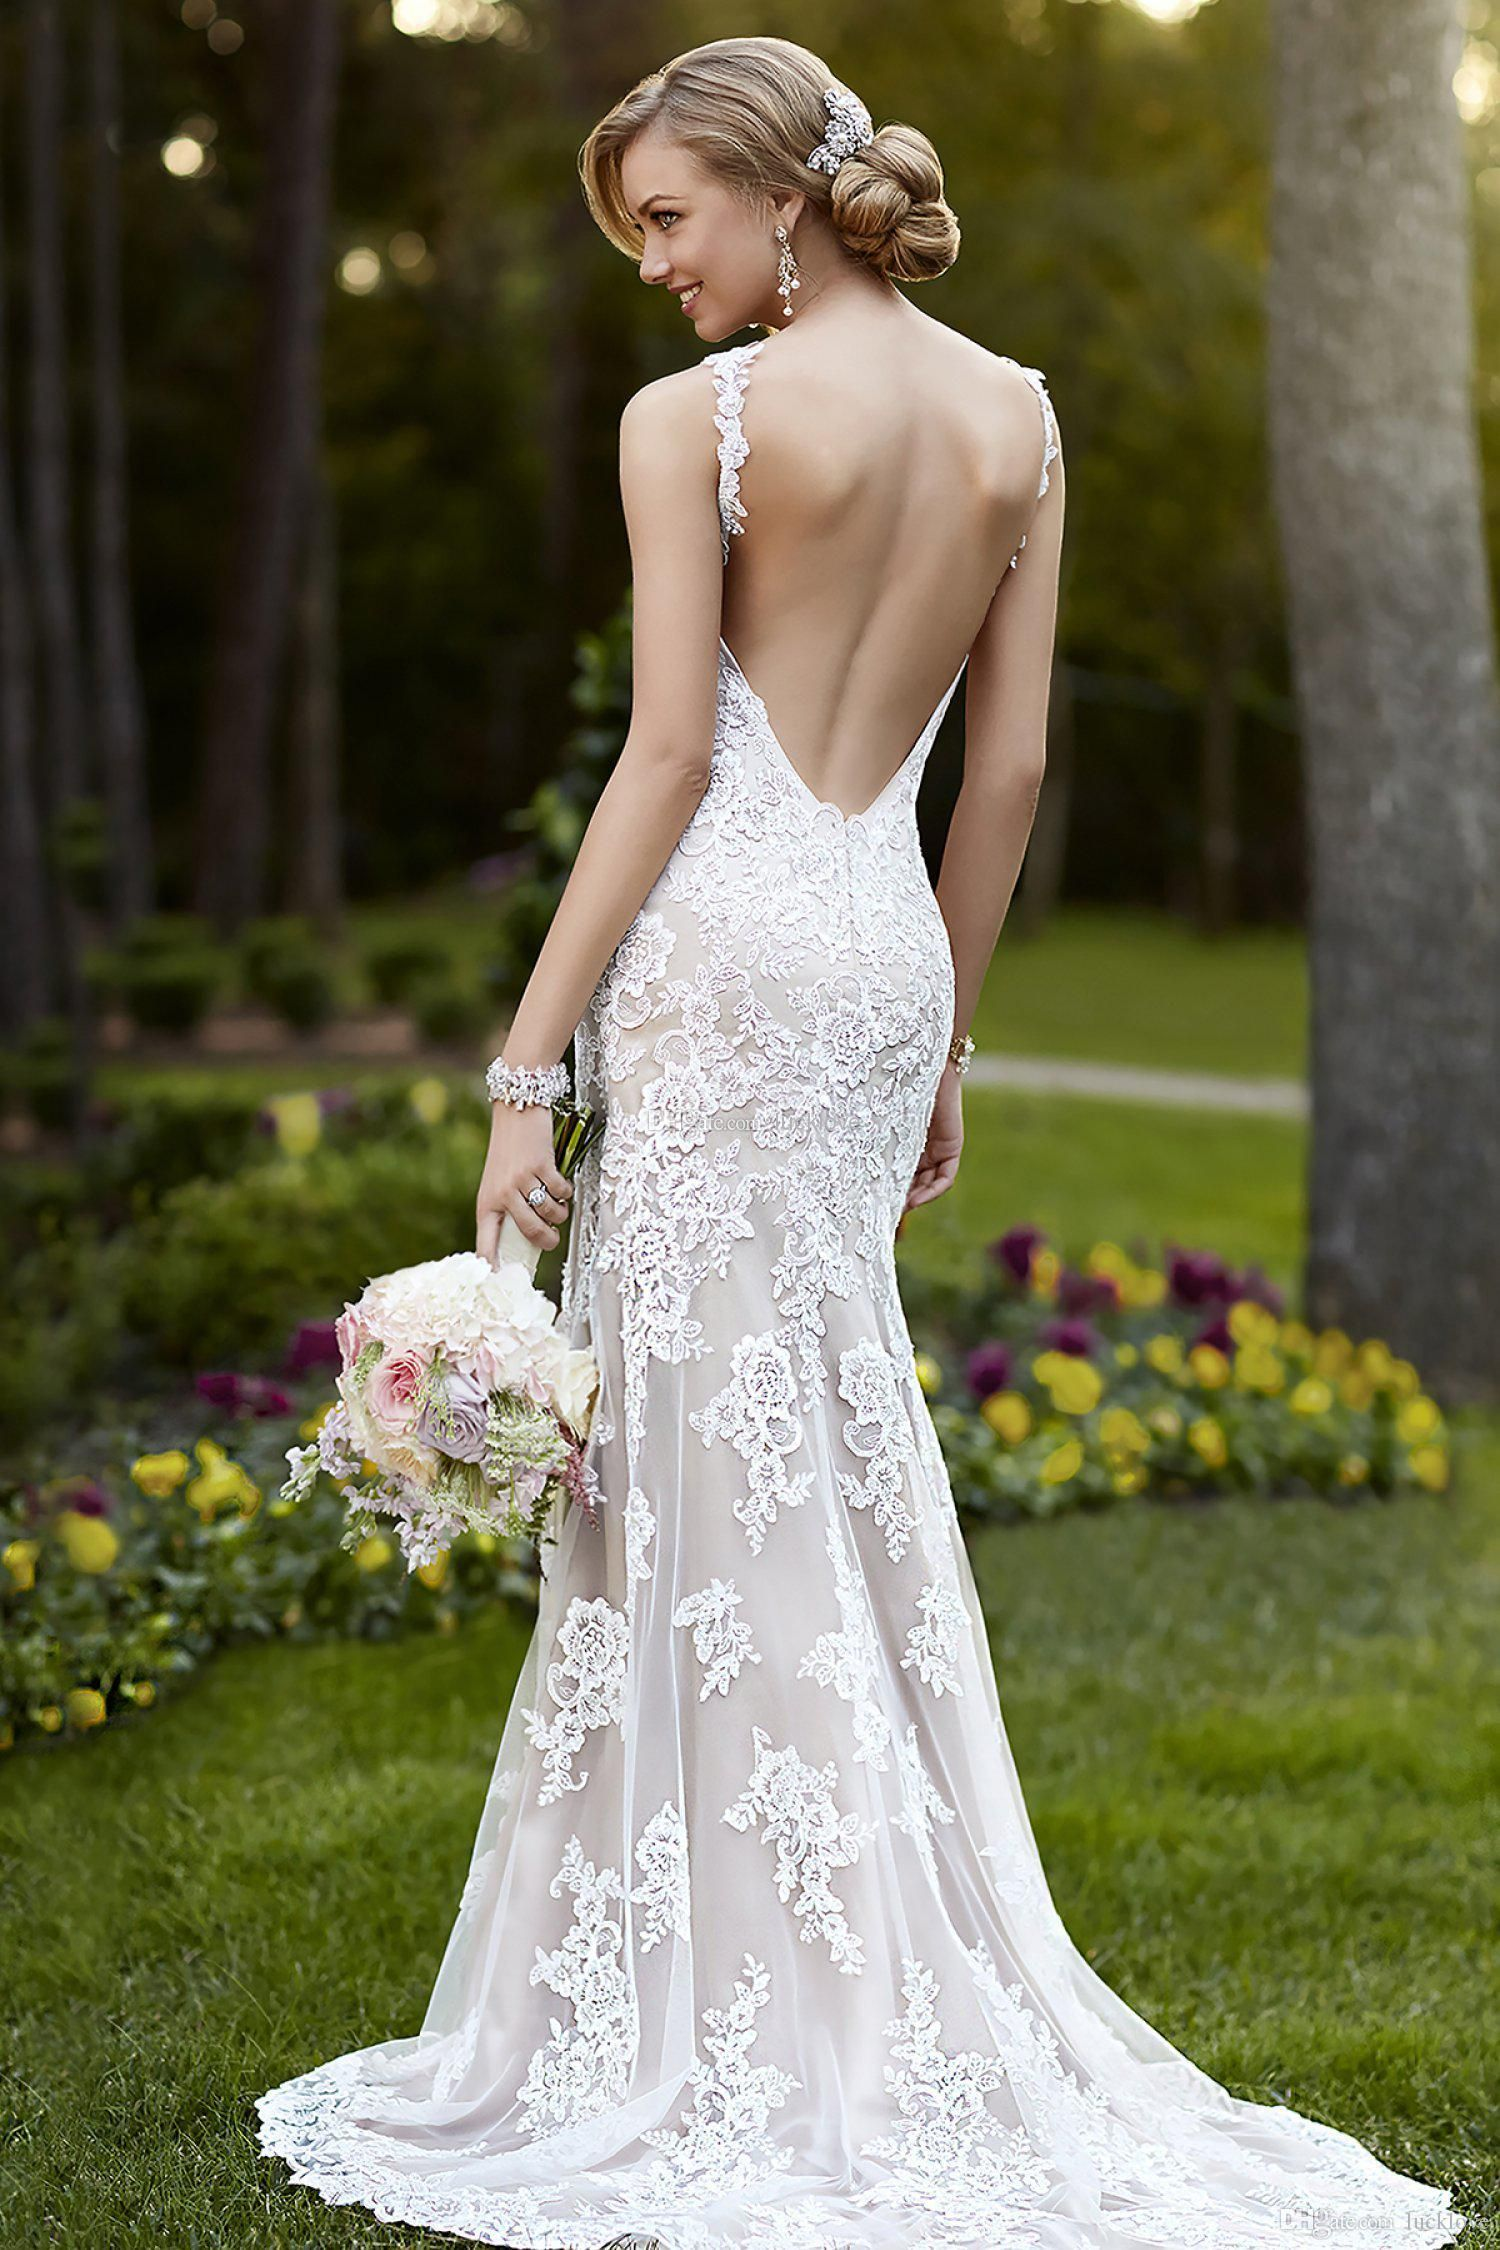 Newest wedding dresses sheer with lace sheath spaghetti straps